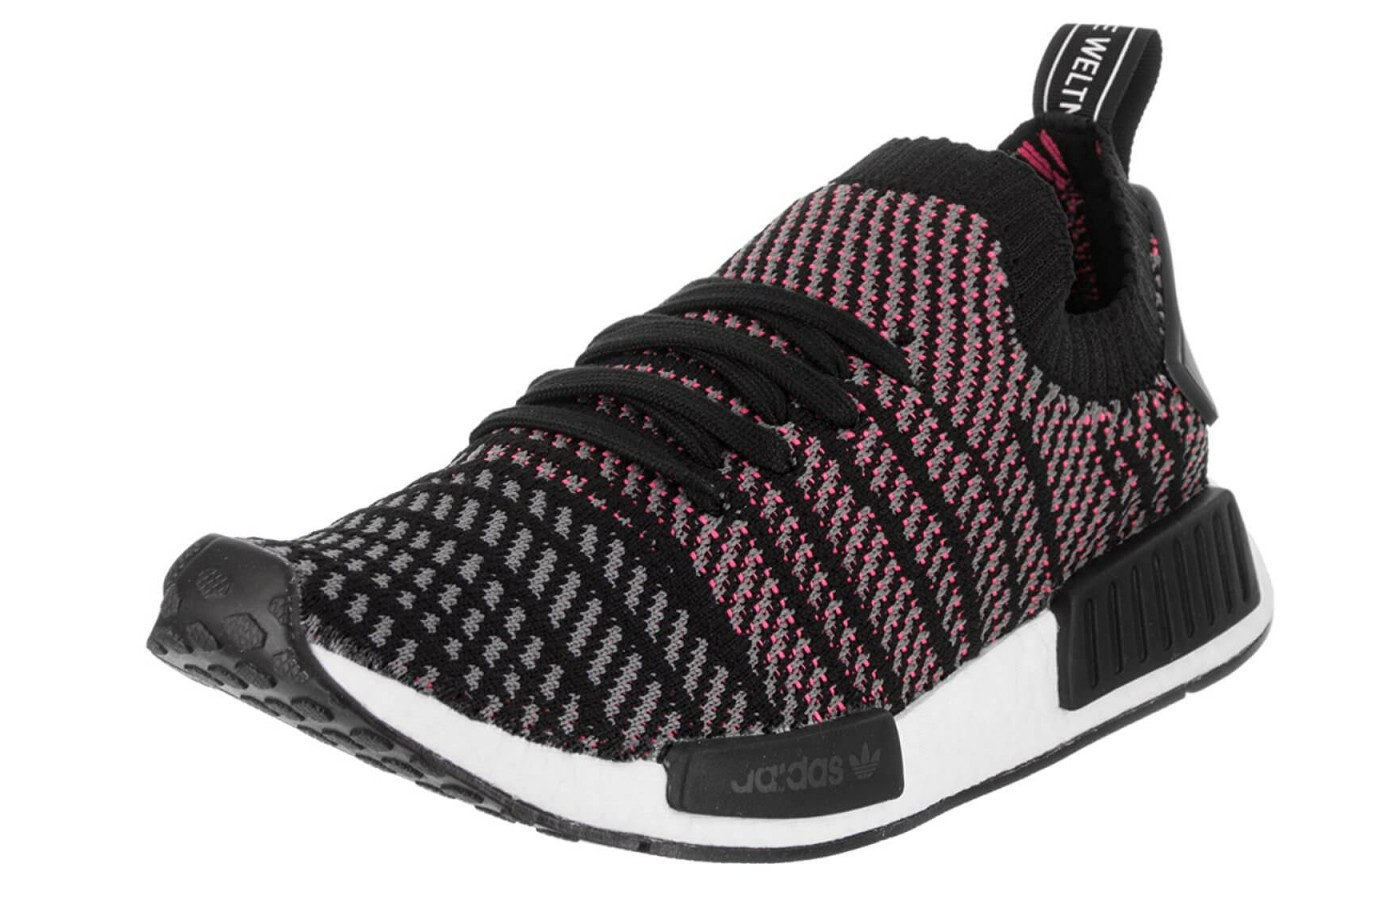 bd287c191 The Adidas NMD R1 Stlt Primeknit features a Primeknit upper ...